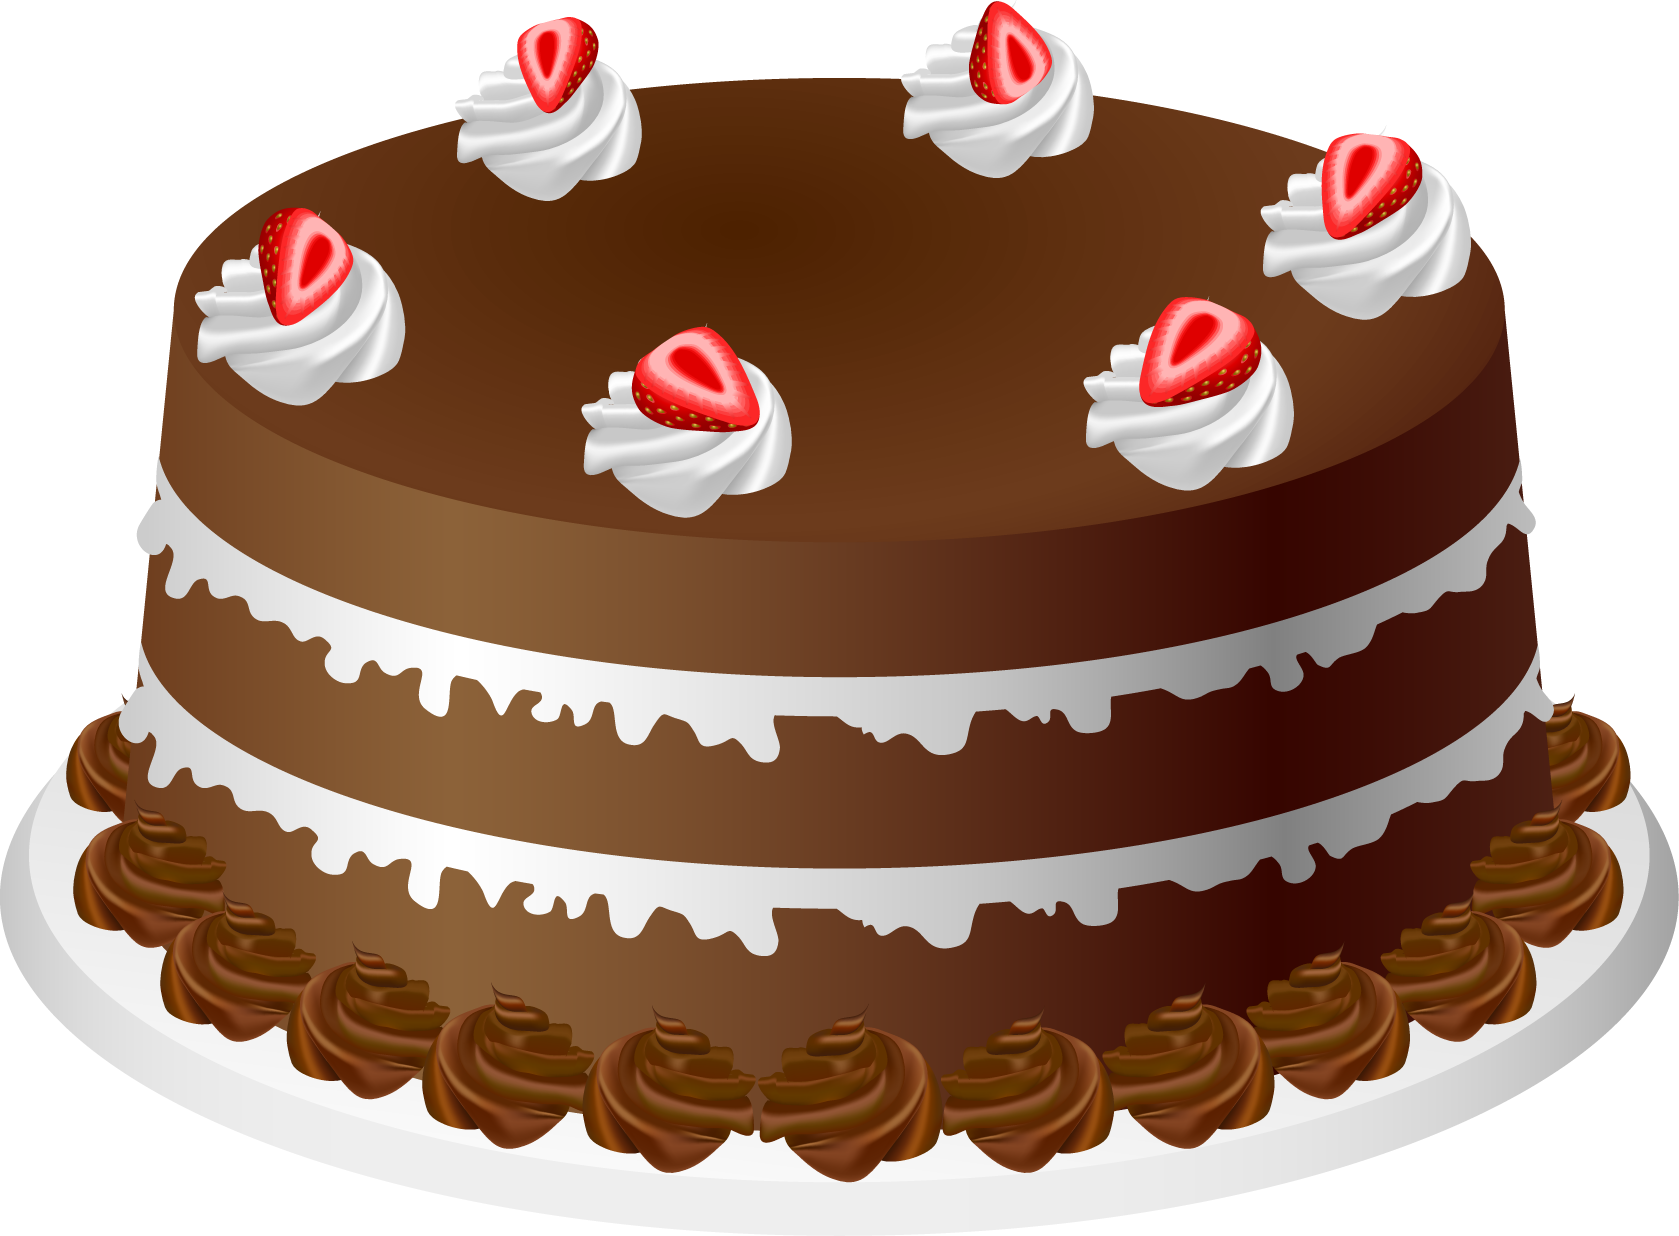 Chocolate Cake Clipart-Chocolate Cake Clipart-2